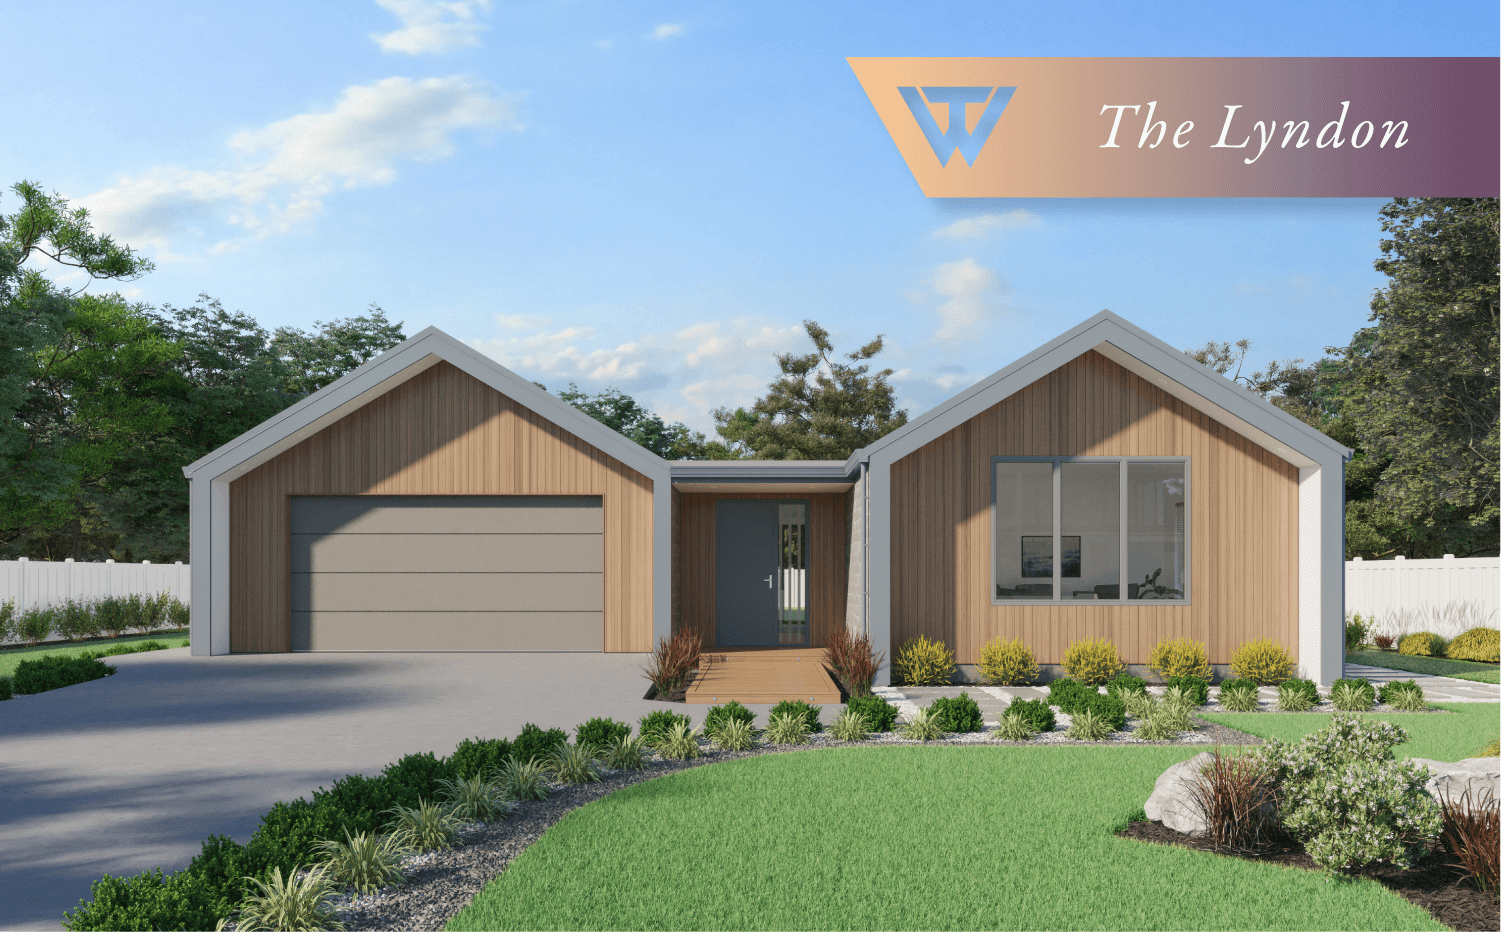 The-Lyndon-Tim-Whittle-Homes-New-Zealand-Builder-House-And-Land-Packages.png